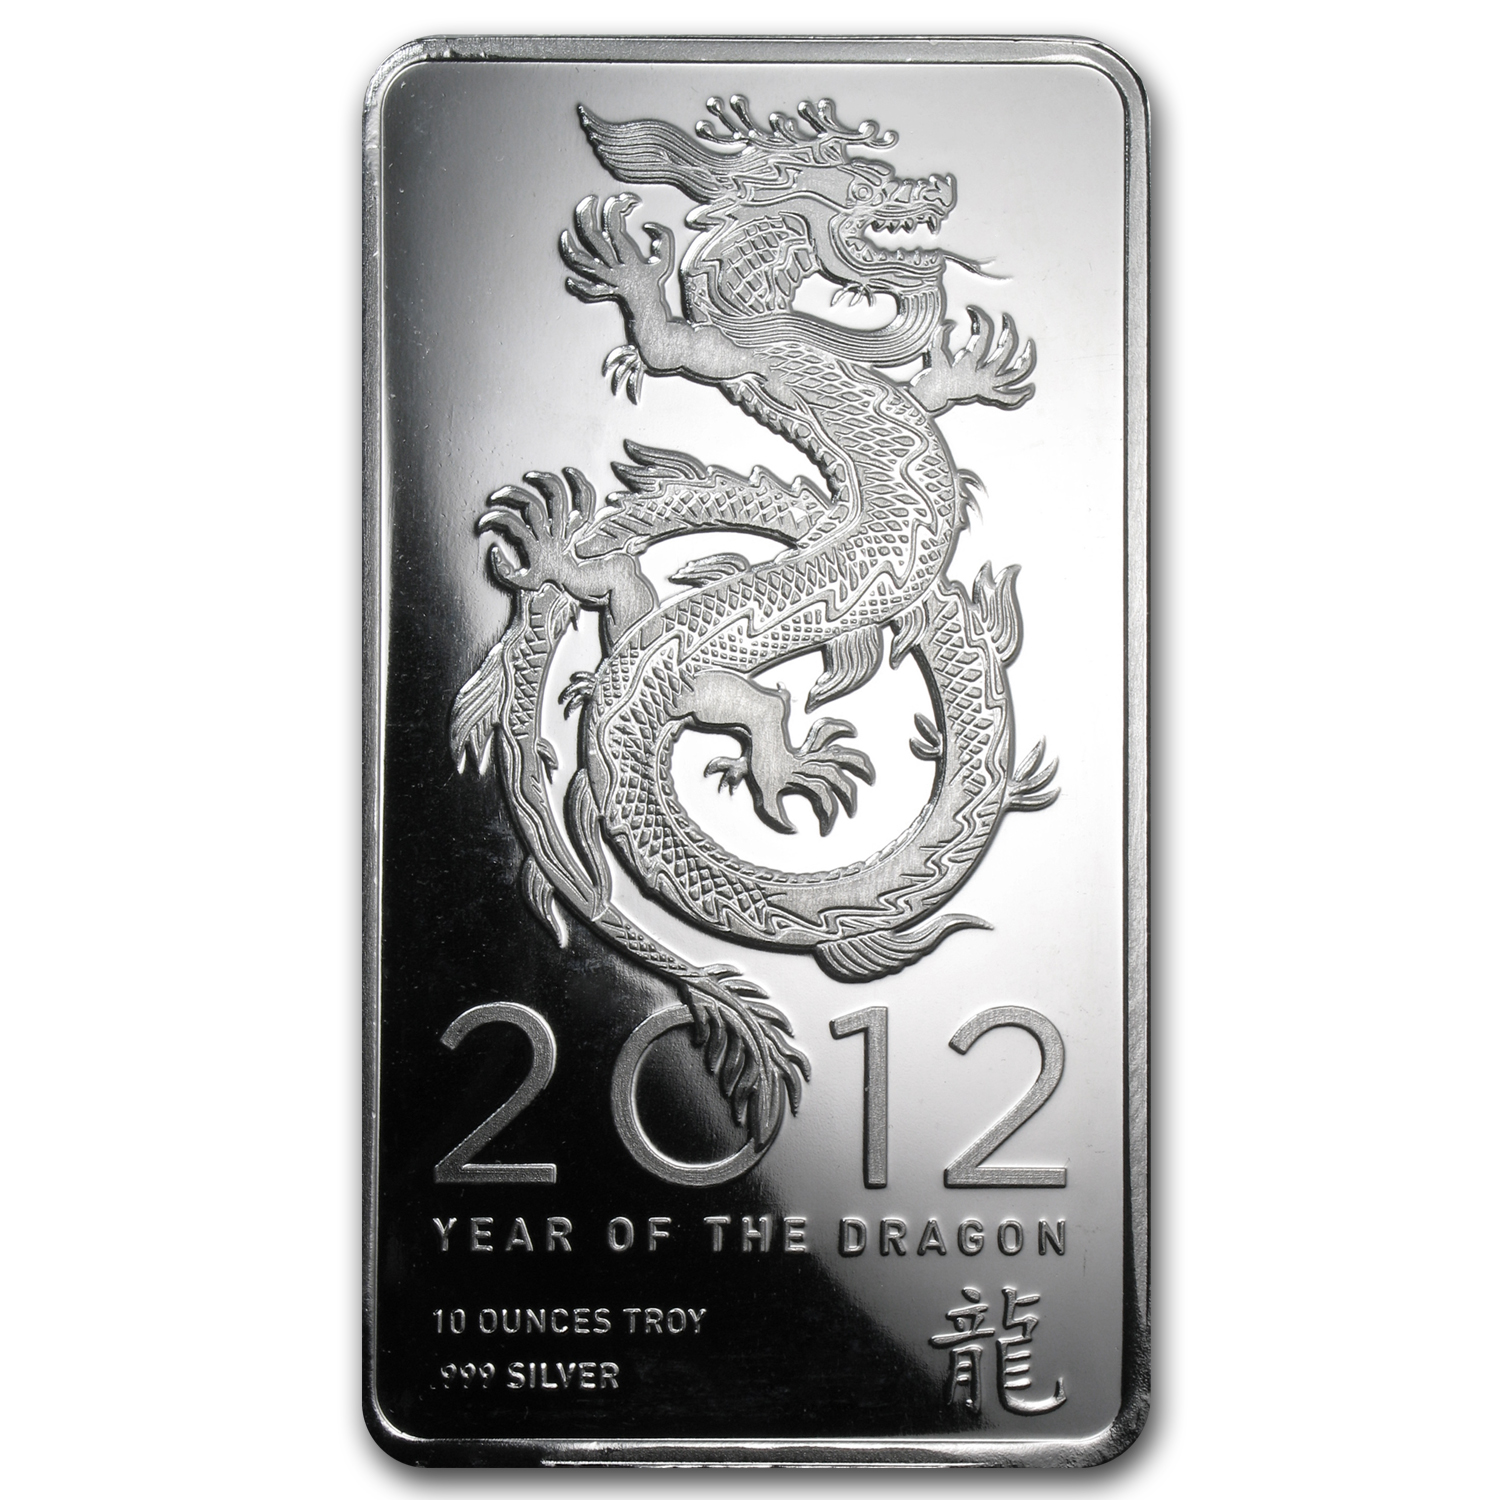 10 oz Silver Bars - APMEX (2012 Year of the Dragon)